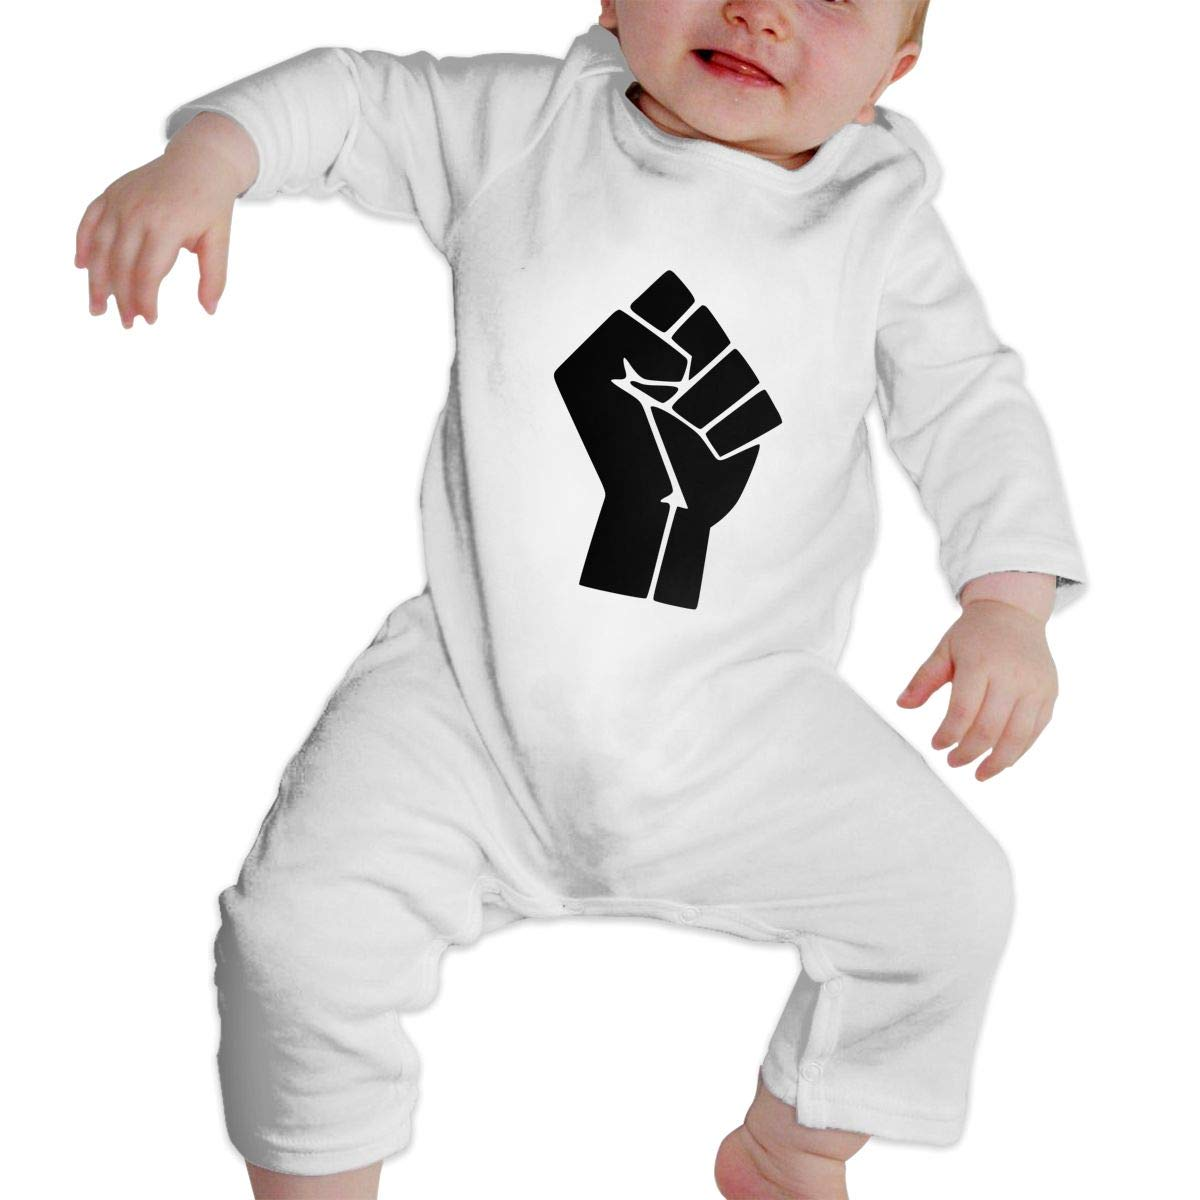 KAYERDELLE Fist Black Lives Matter Long-Sleeve Unisex Baby Romper for 6-24 Months Infant